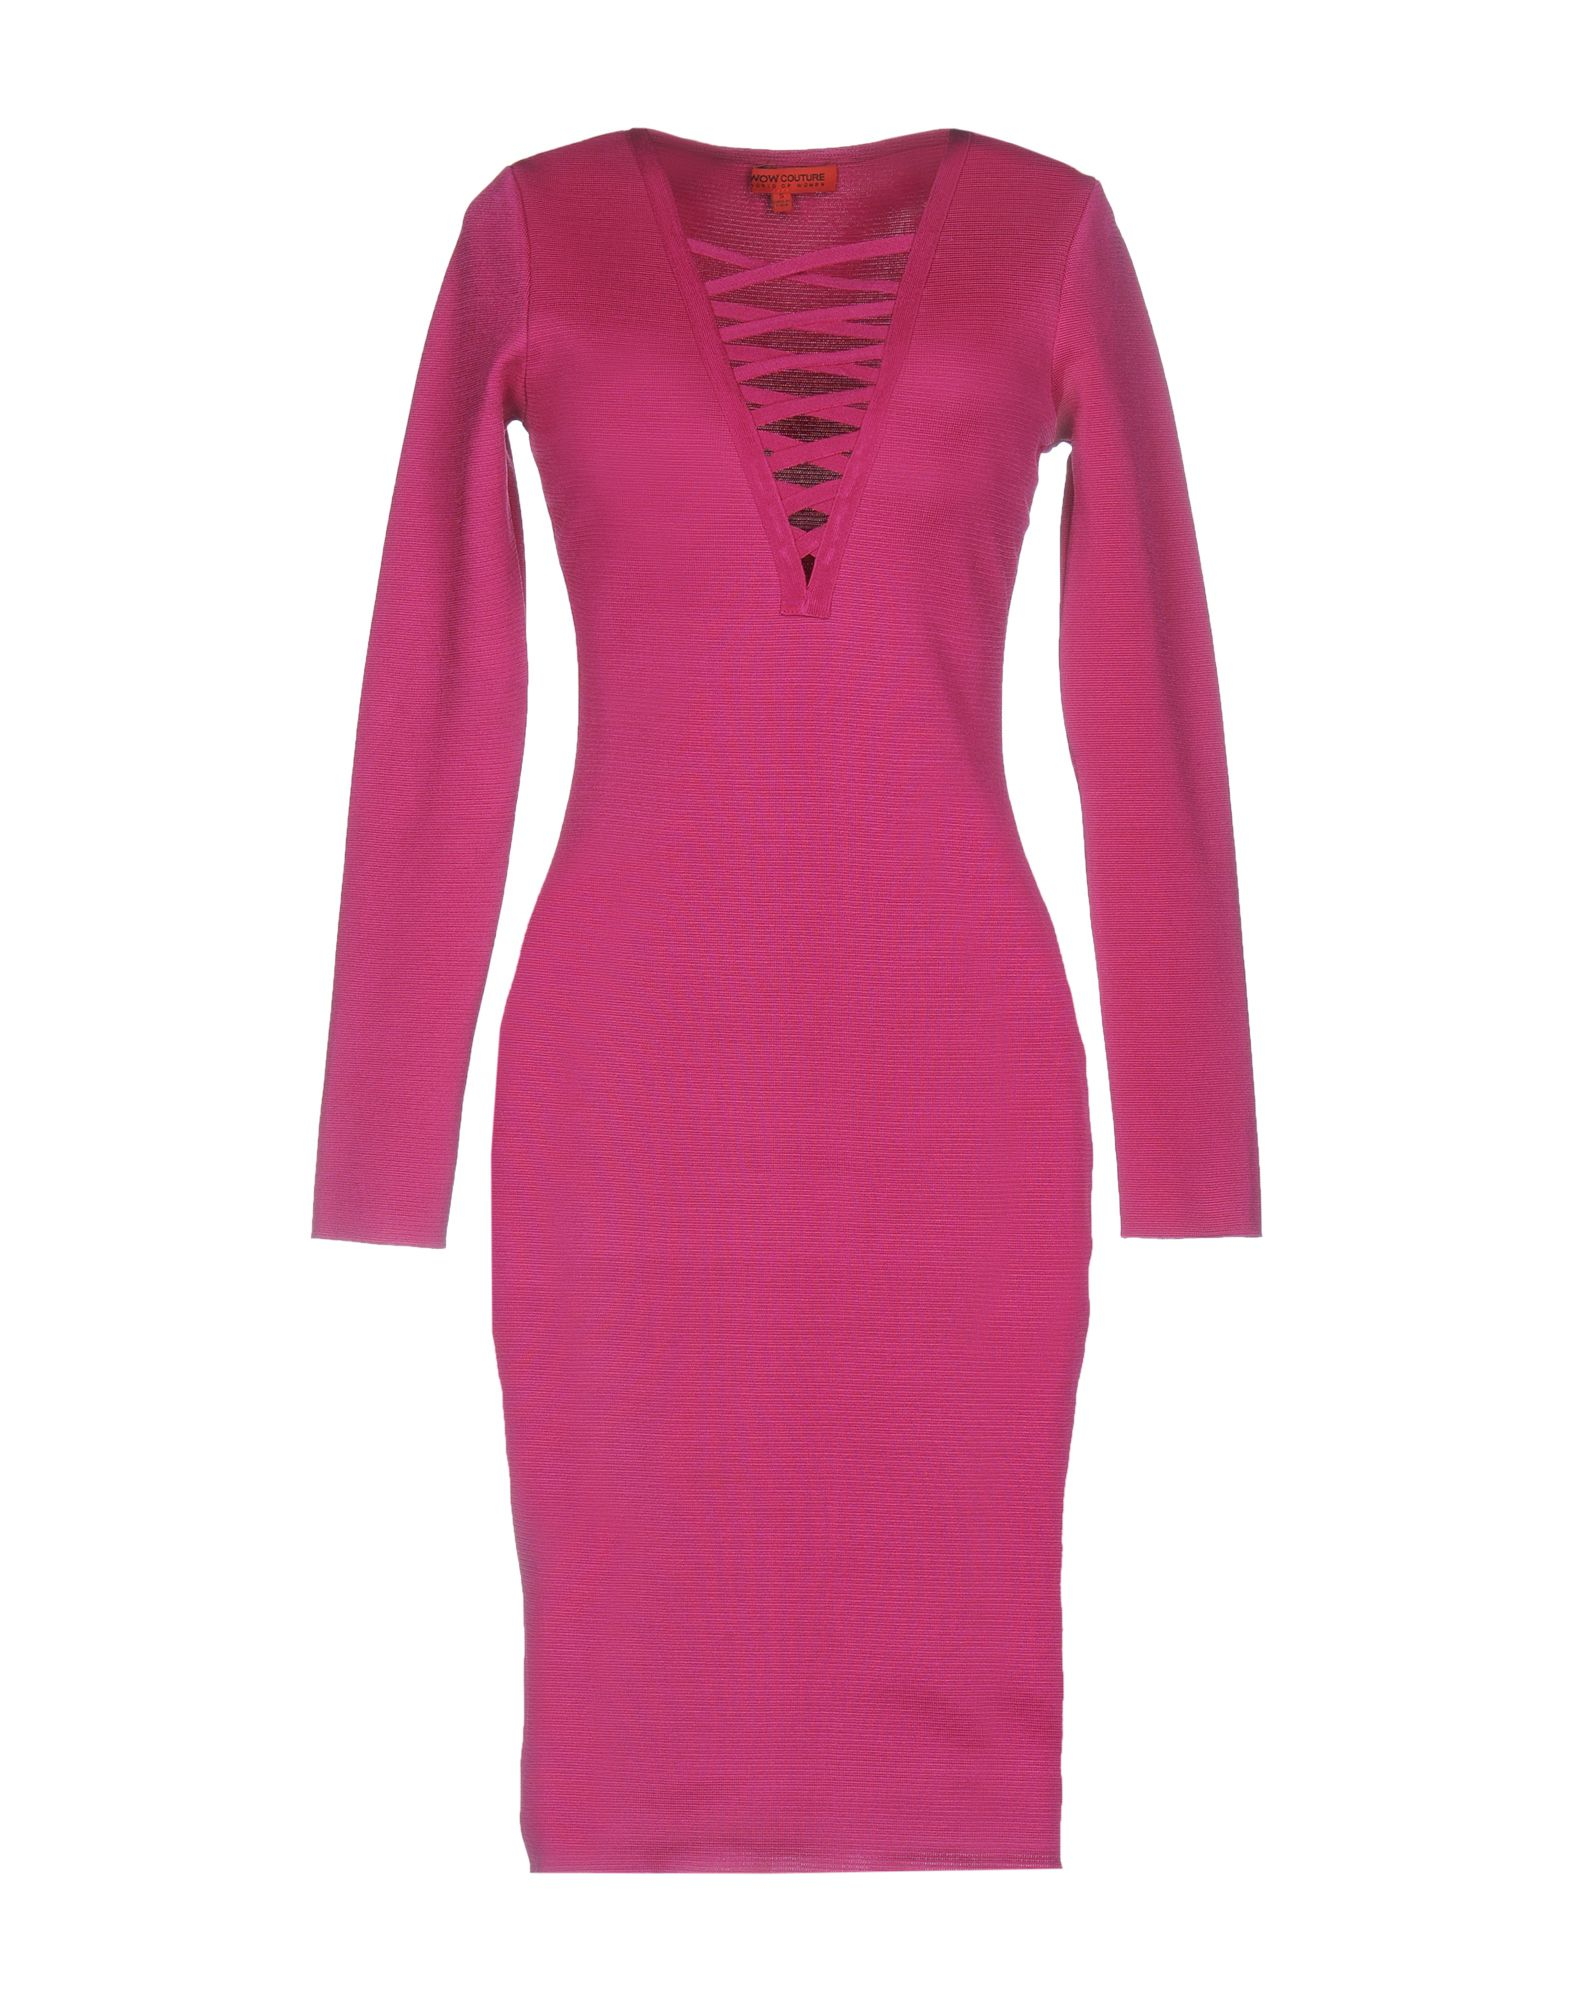 WOW COUTURE Knee-Length Dress in Mauve